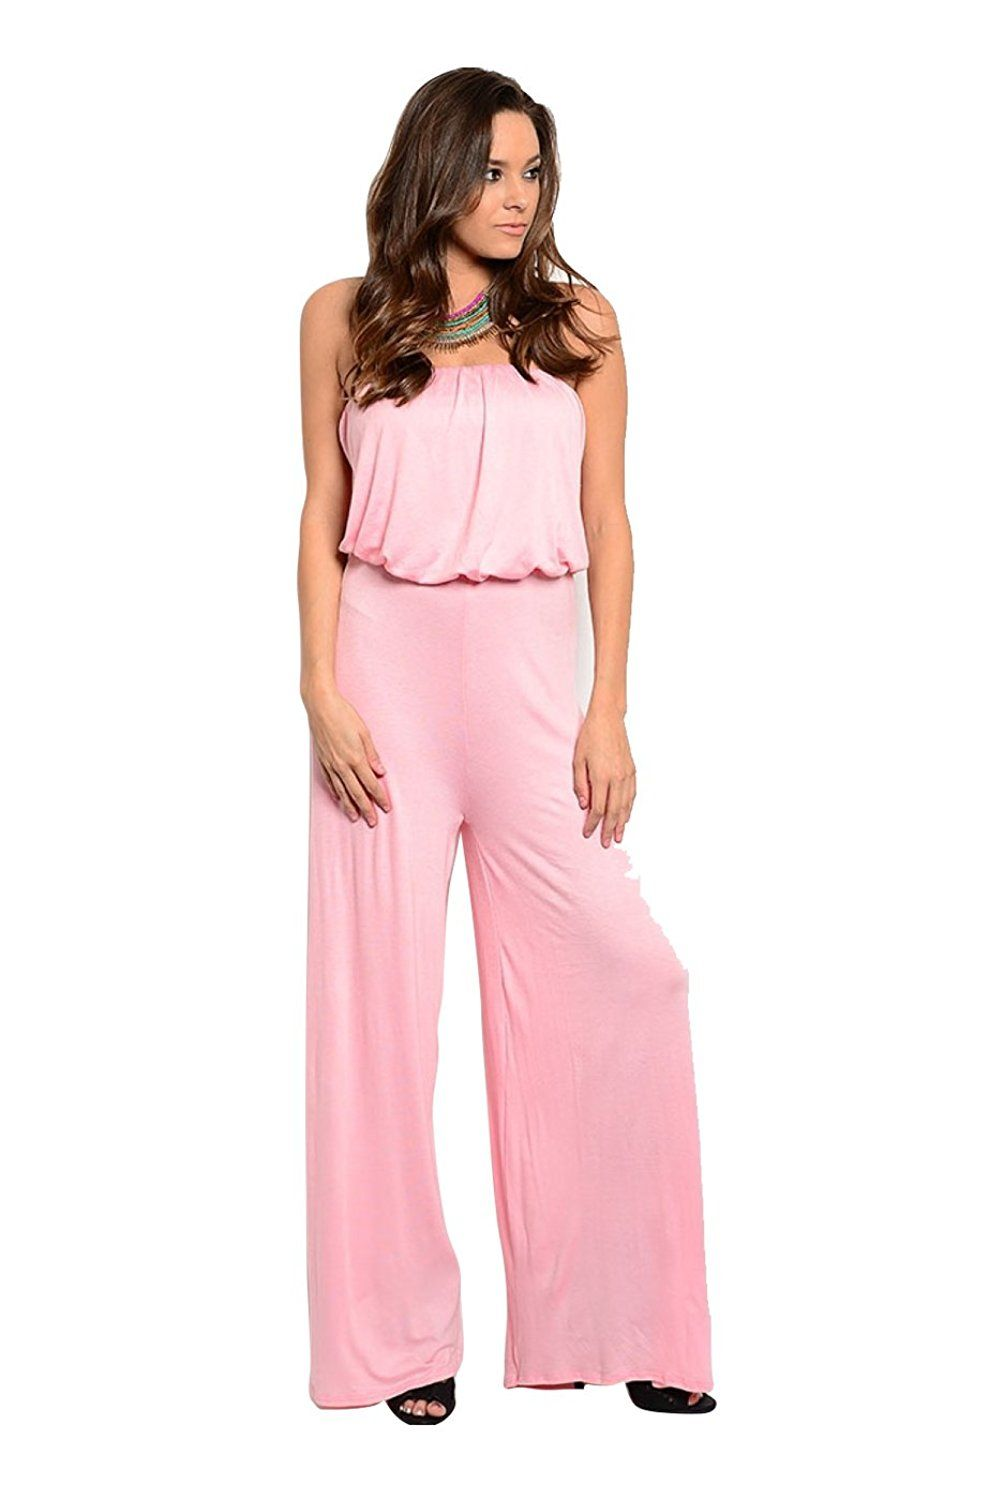 469b2d0ecbf 2LUV Women s Strapless Dressy Wide Leg Jumpsuit     This is an Amazon  Affiliate link. Read more reviews of the product by visiting the link on  the image.